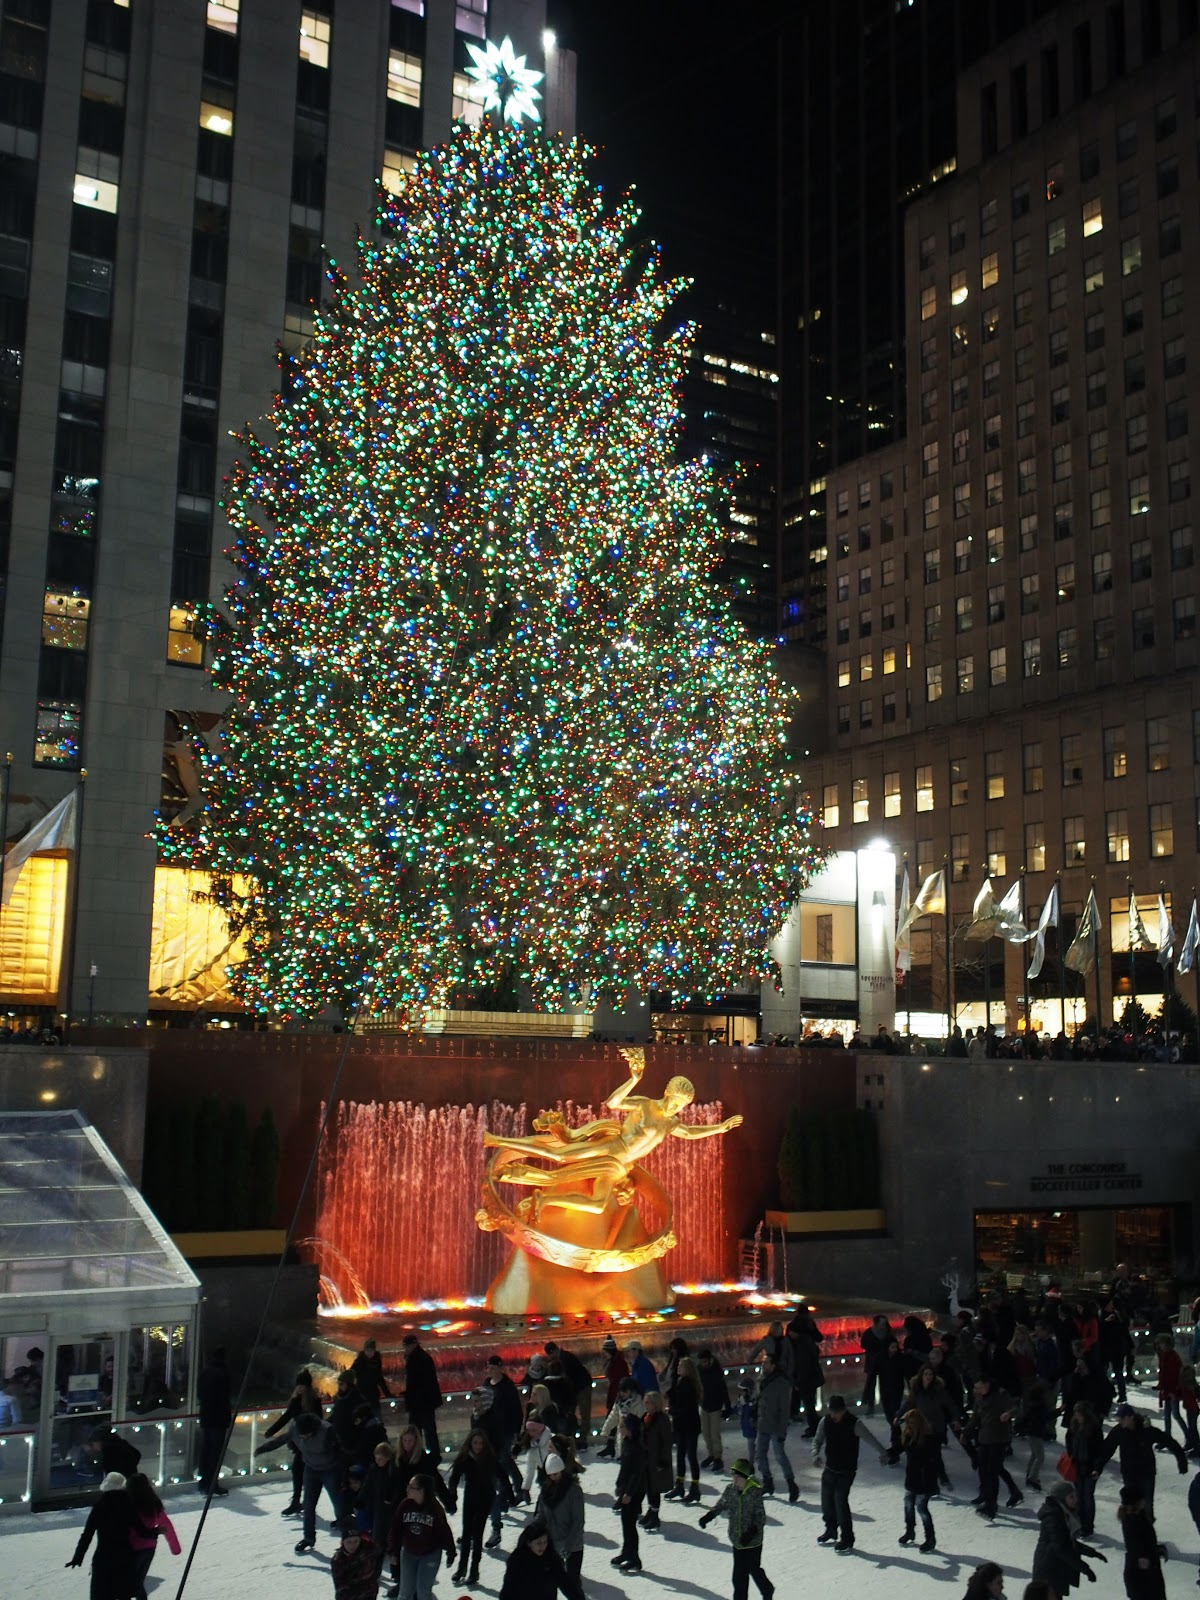 #RockCenter Tree - 2014 #RockCenterTree2014  #holidays #holidaysinNYC #rockefellercenter #NYC ©2014 Nancy Lundebjerg